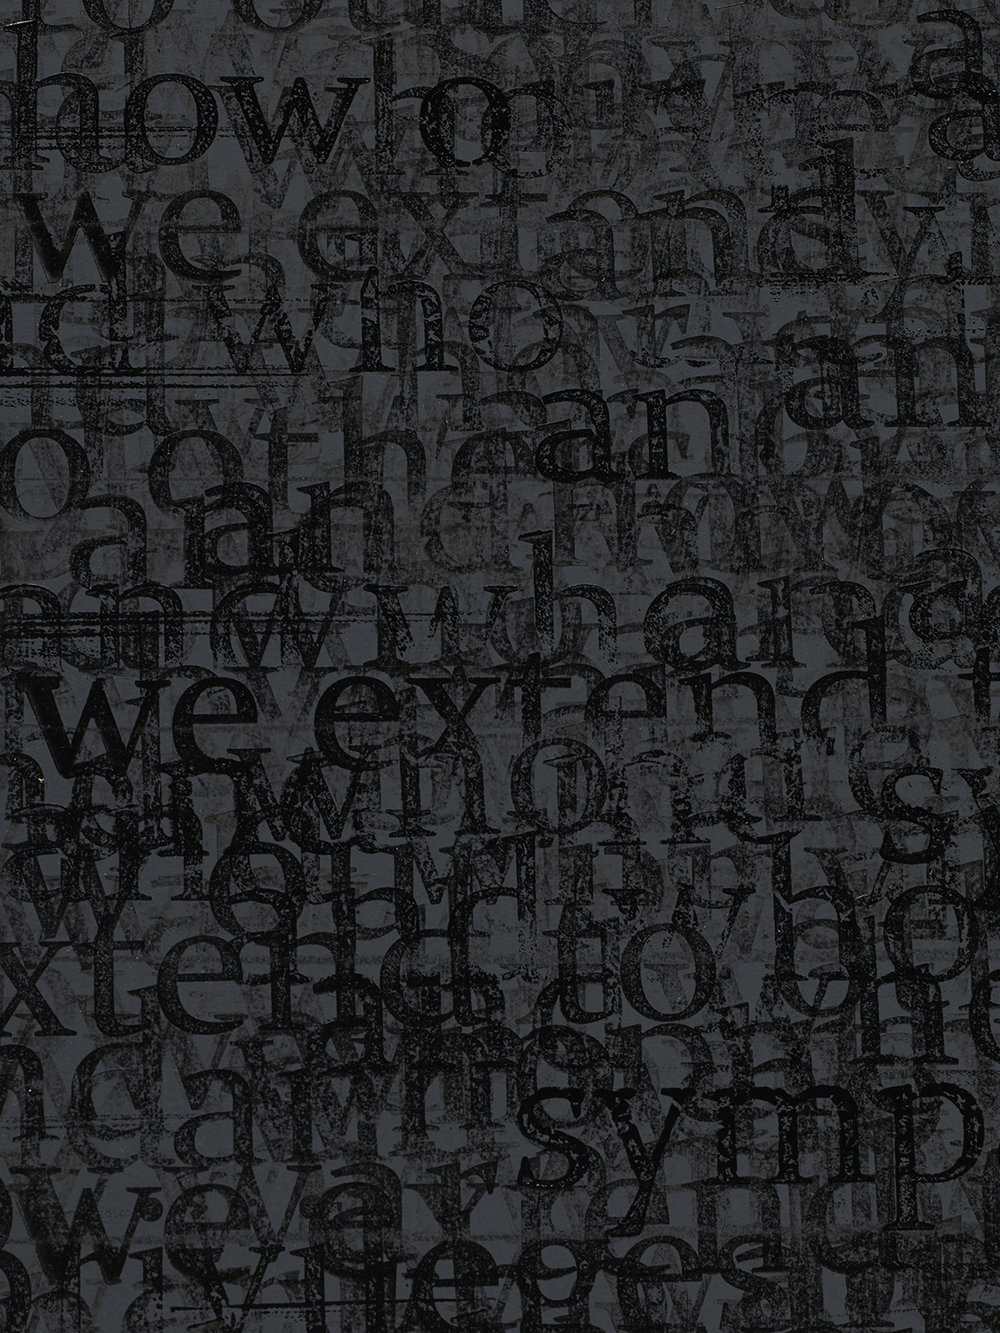 Idris Khan detail of  The Pain of Others (No. 2) , 2017, ink and acrylic on diabond panel with aluminum subframe, 267 × 188 × 6 cm.  Found on  http://artasiapacific.com/